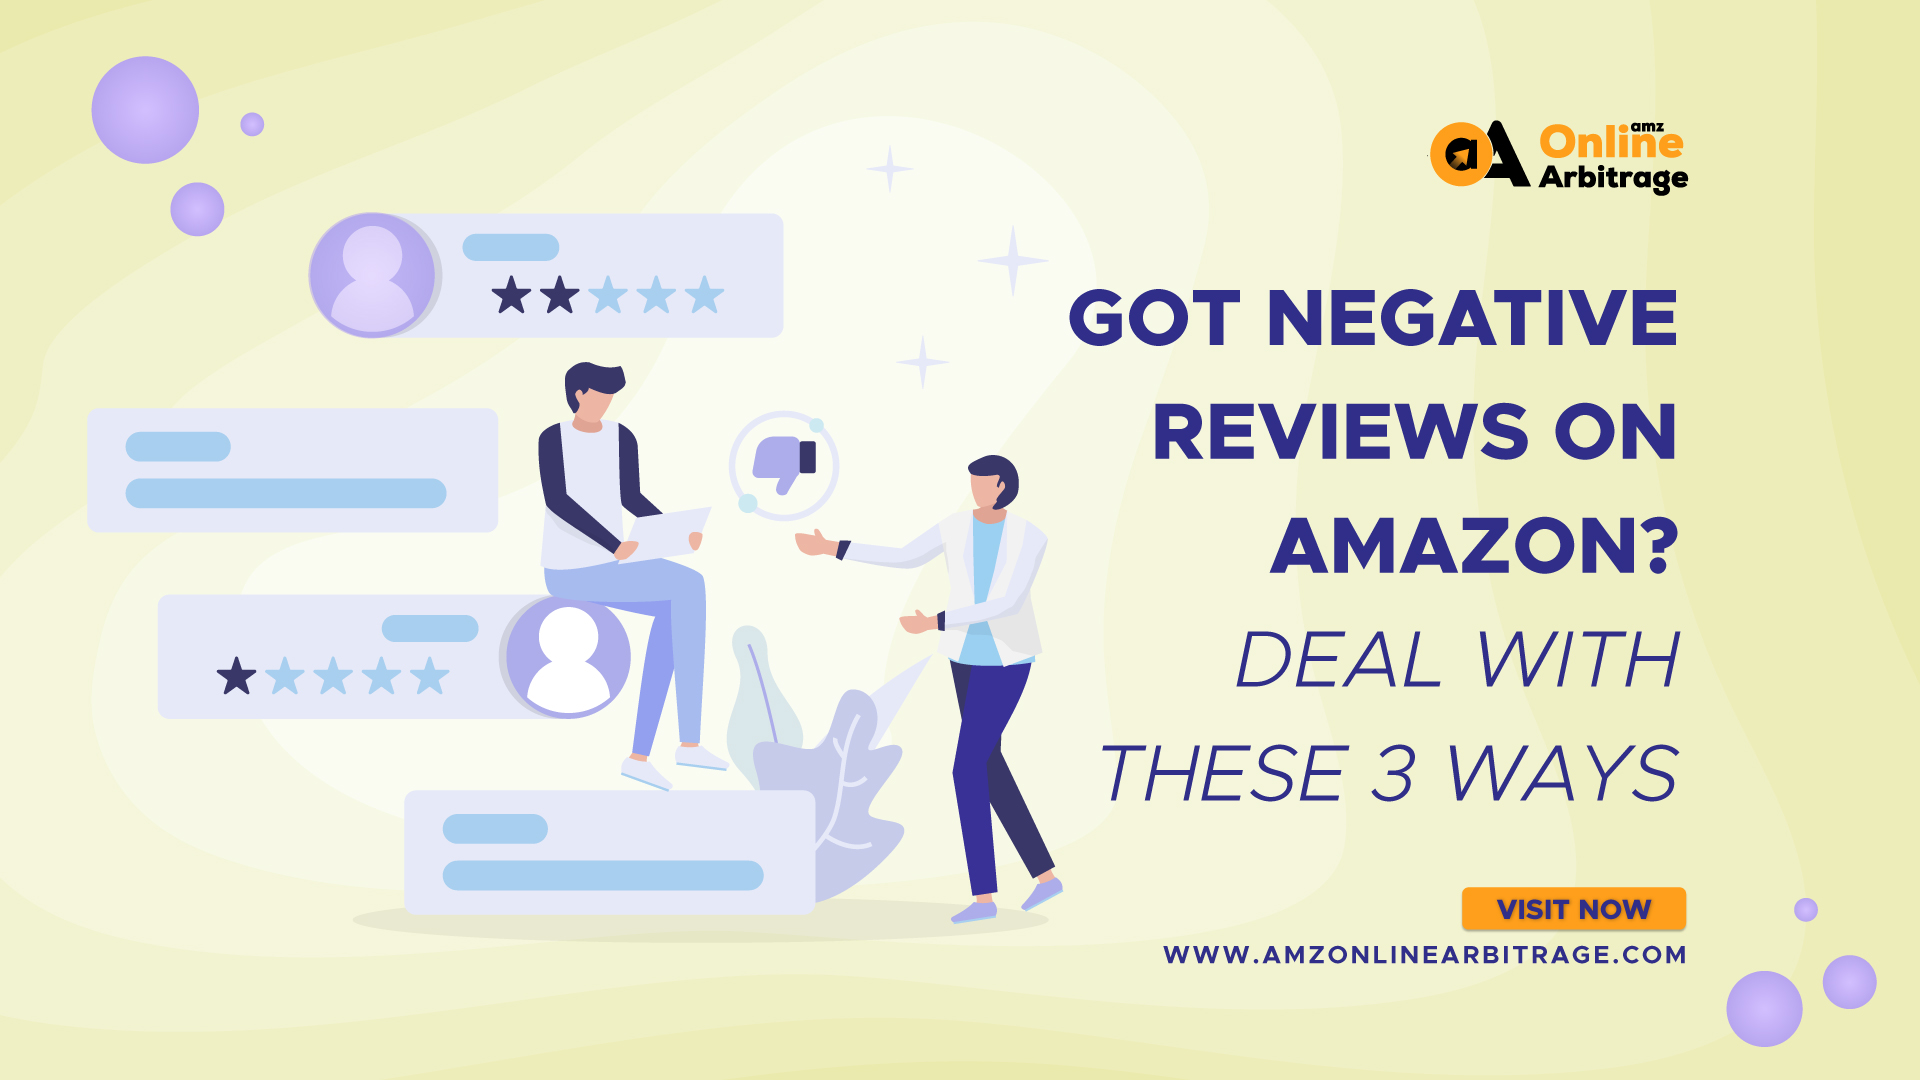 GOT NEGATIVE REVIEWS ON AMAZON? DEAL WITH THESE 3 WAYS